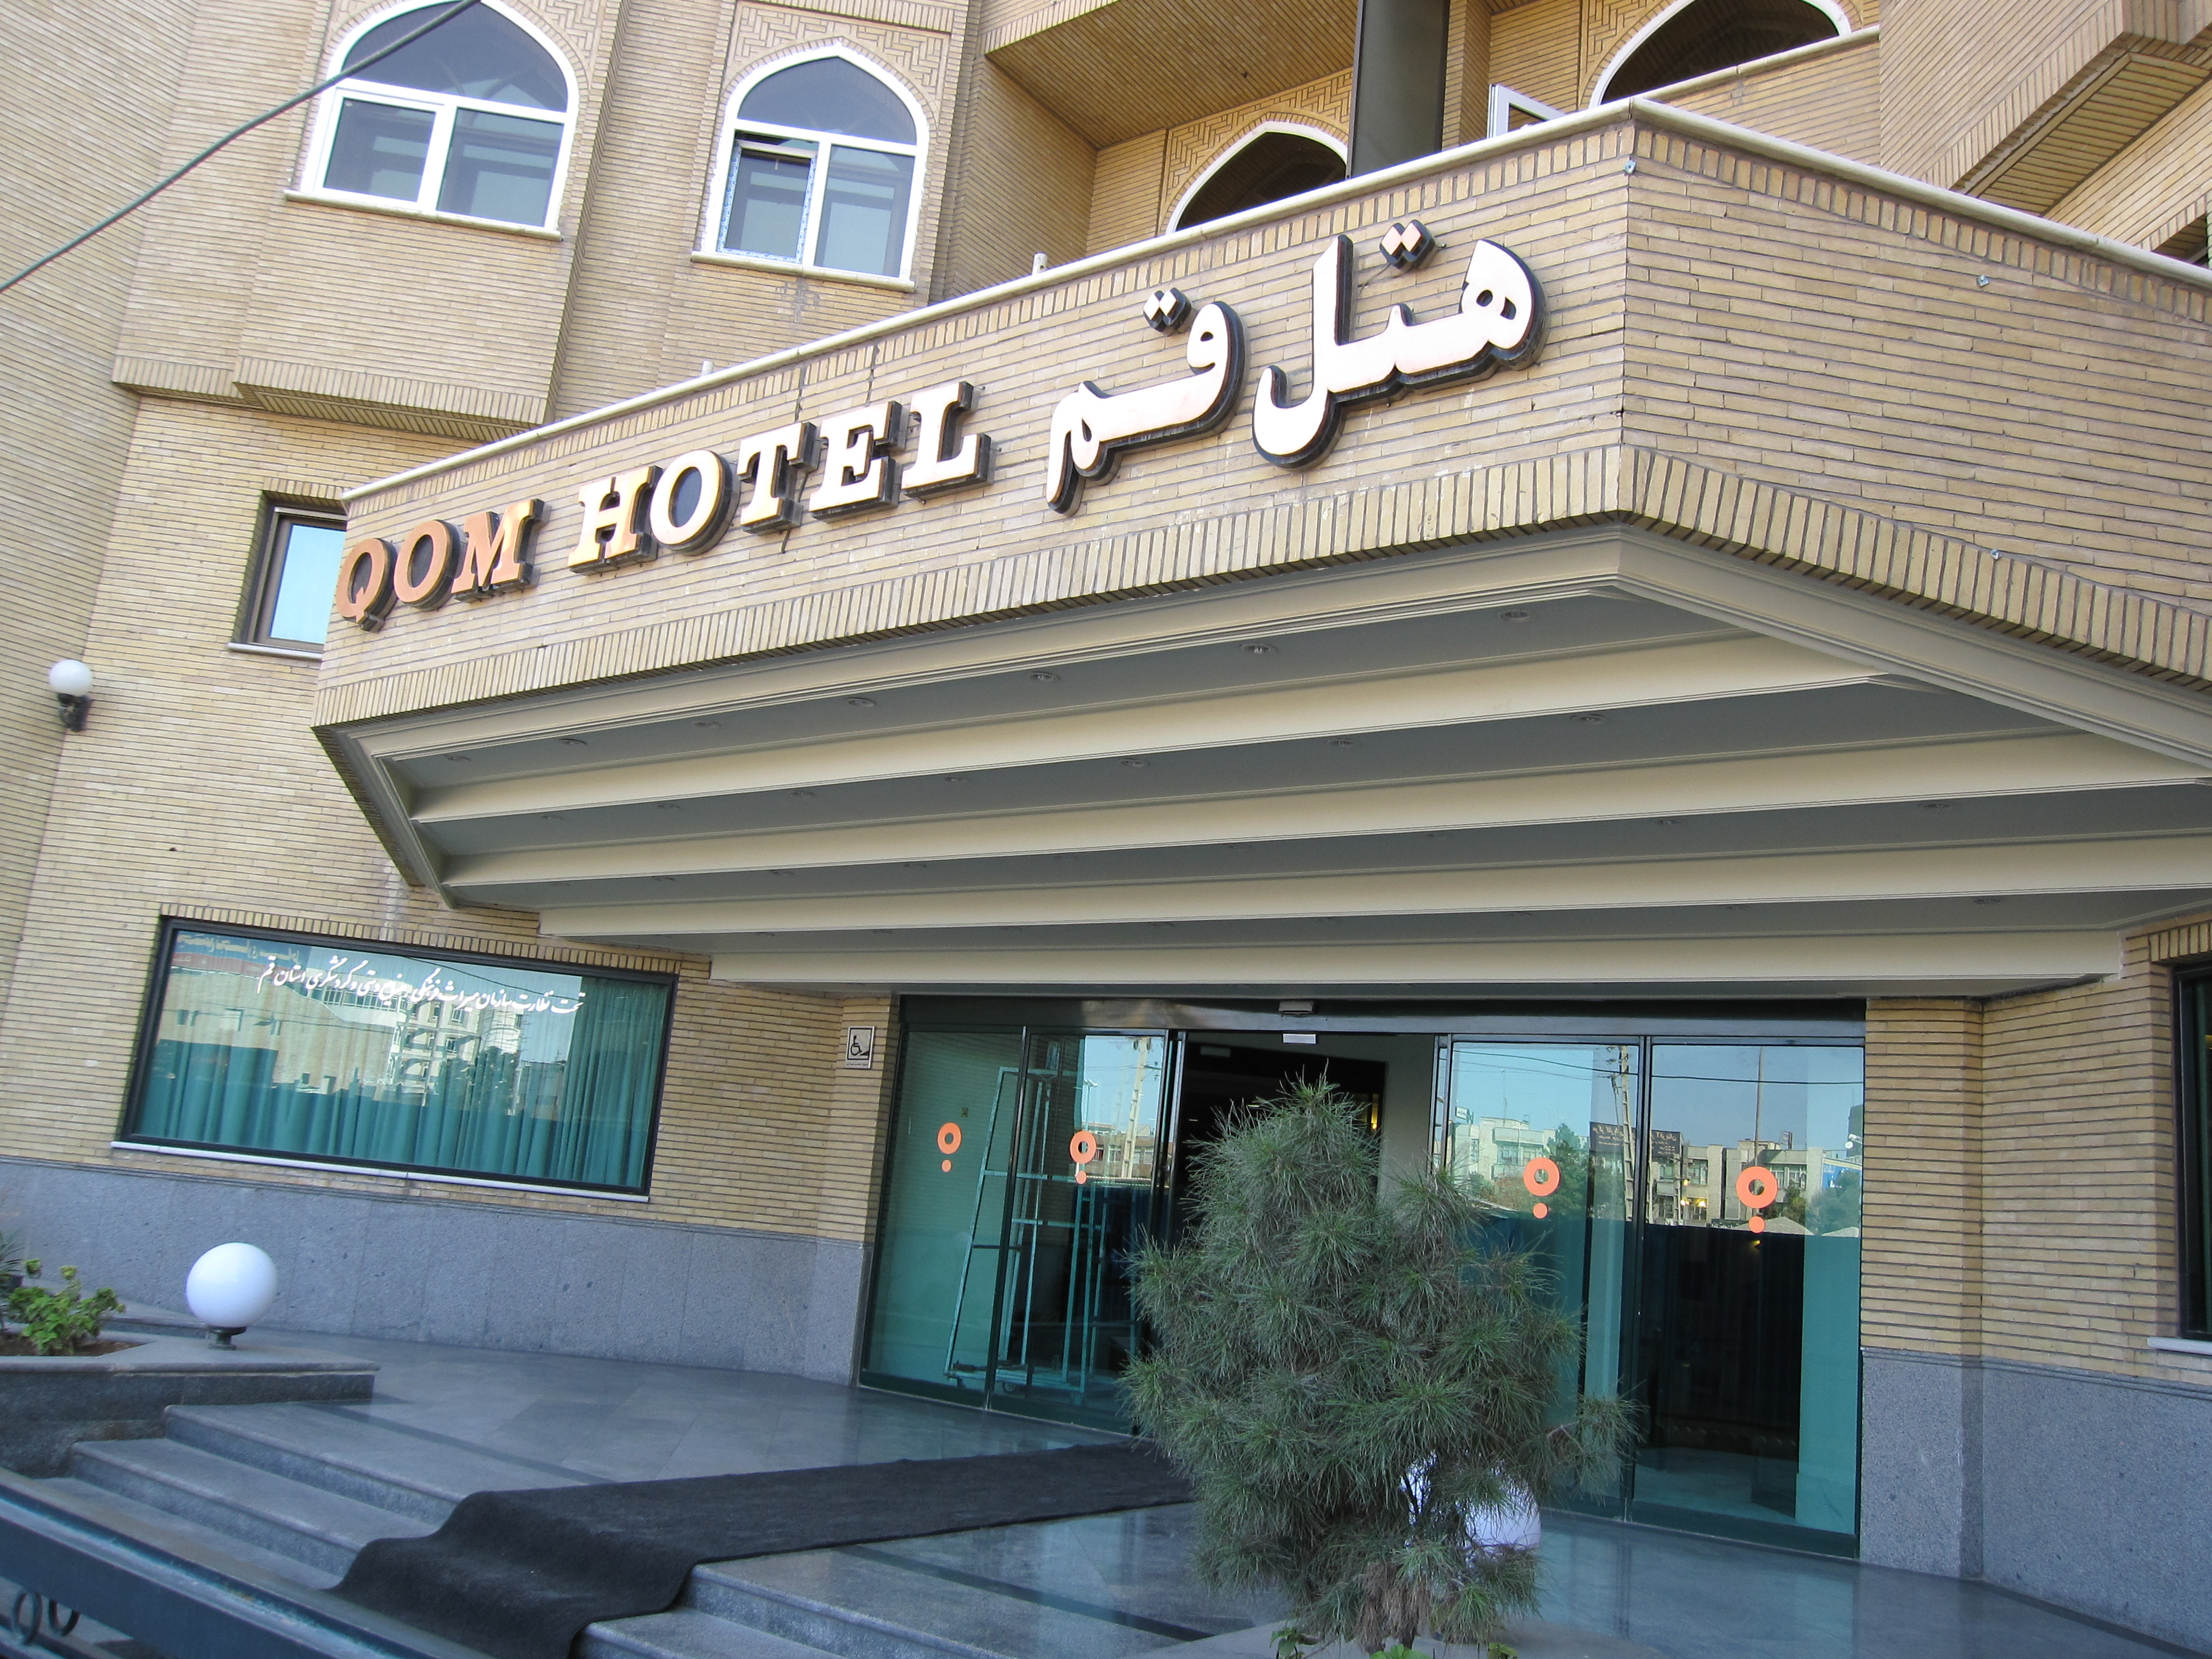 Hotels for Independent hotels near me